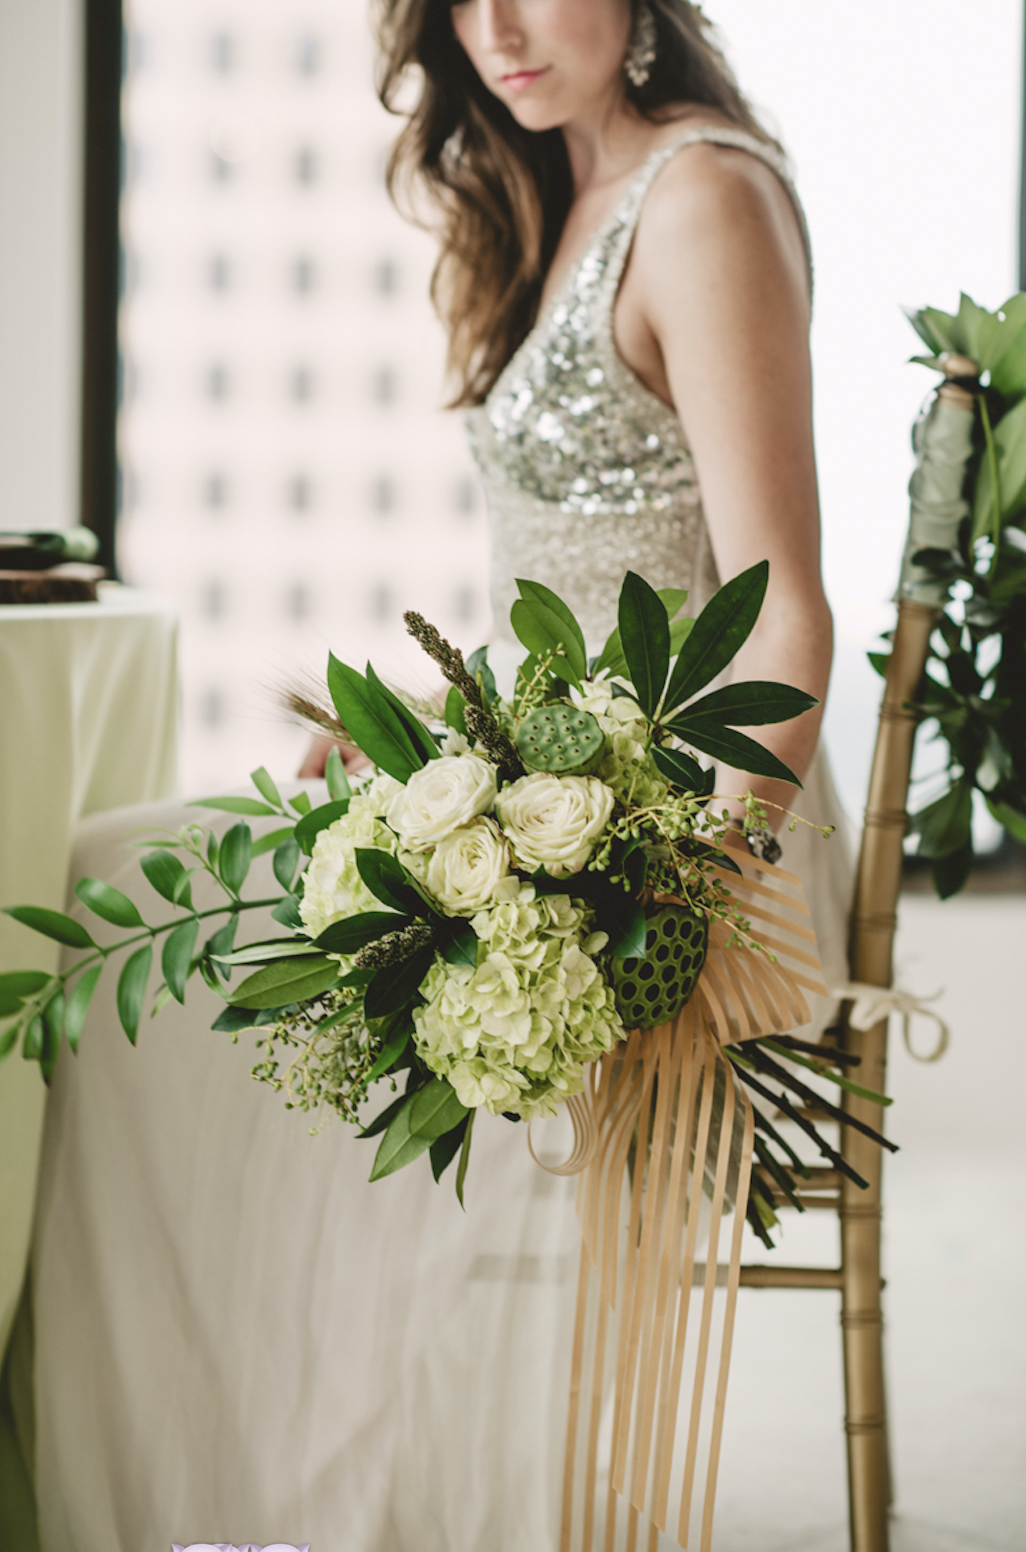 A stunning all white bridal bouquet with touches of greenery and fun textures.